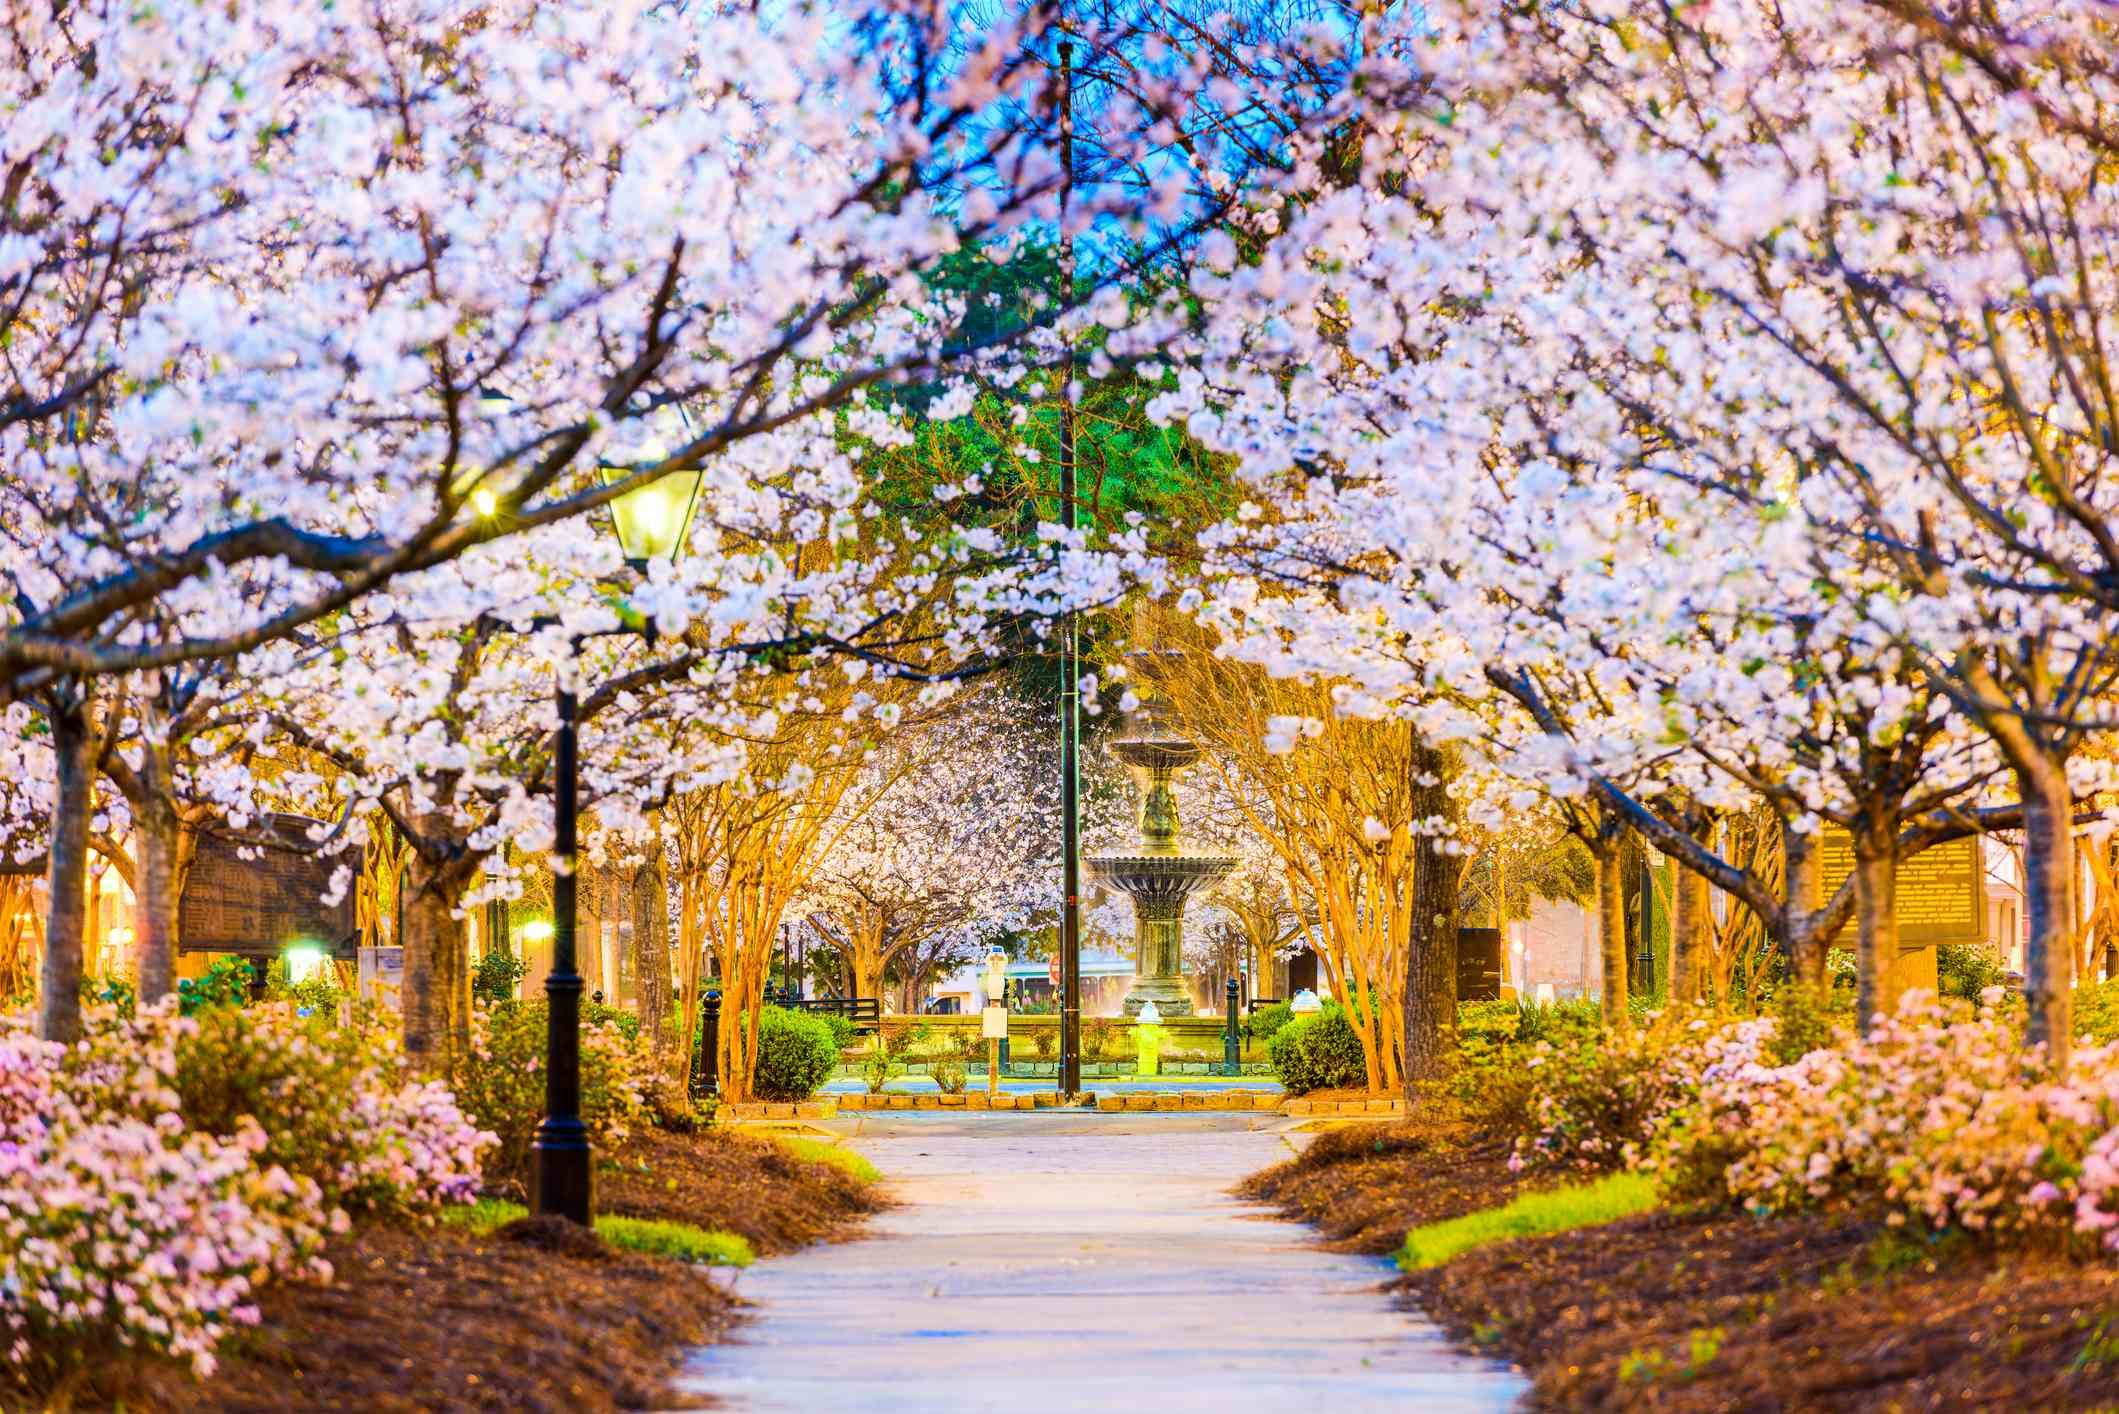 Macon, Georgia with cherry blossoms